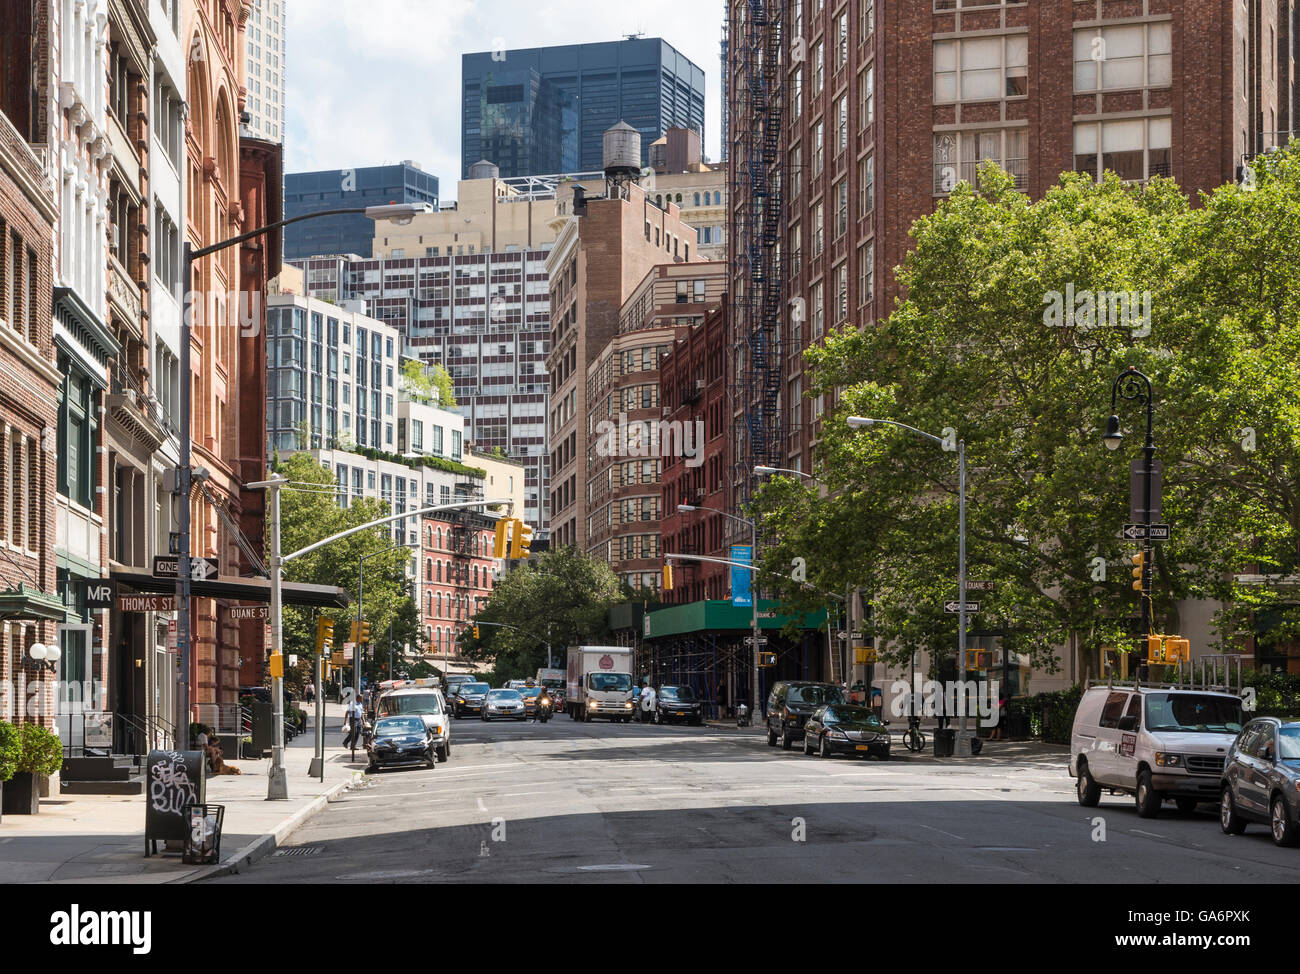 Street view along Hudson Street, Tribeca, with contrasting old and new buildings and skyscrapers with fire escapes Stock Photo